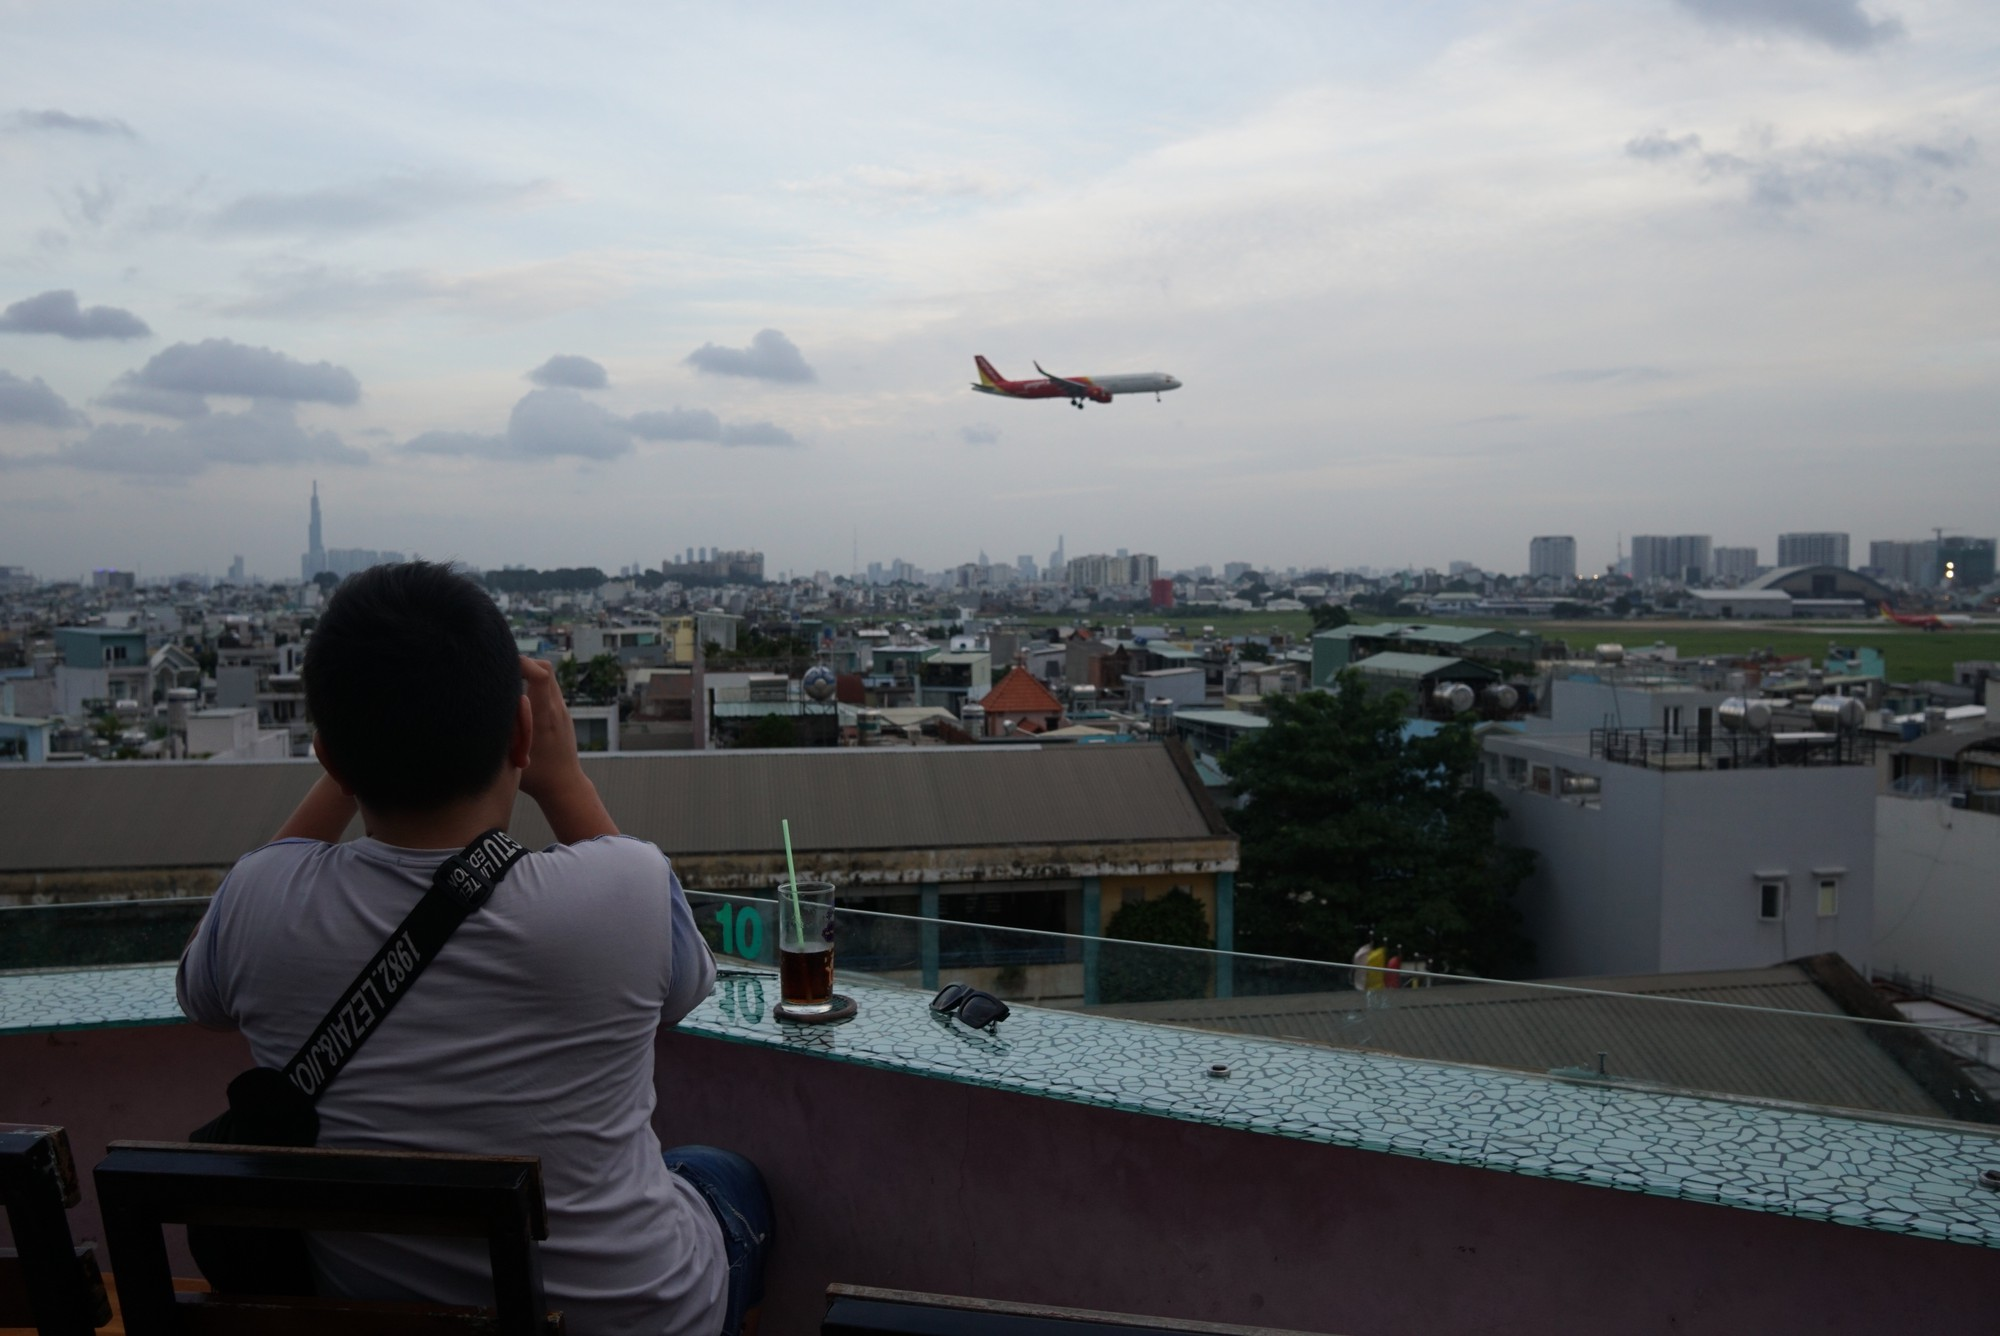 Plane-watching cafes popular in HCM City, travel news, Vietnam guide, Vietnam airlines, Vietnam tour, tour Vietnam, Hanoi, ho chi minh city, Saigon, travelling to Vietnam, Vietnam travelling, Vietnam travel, vn news